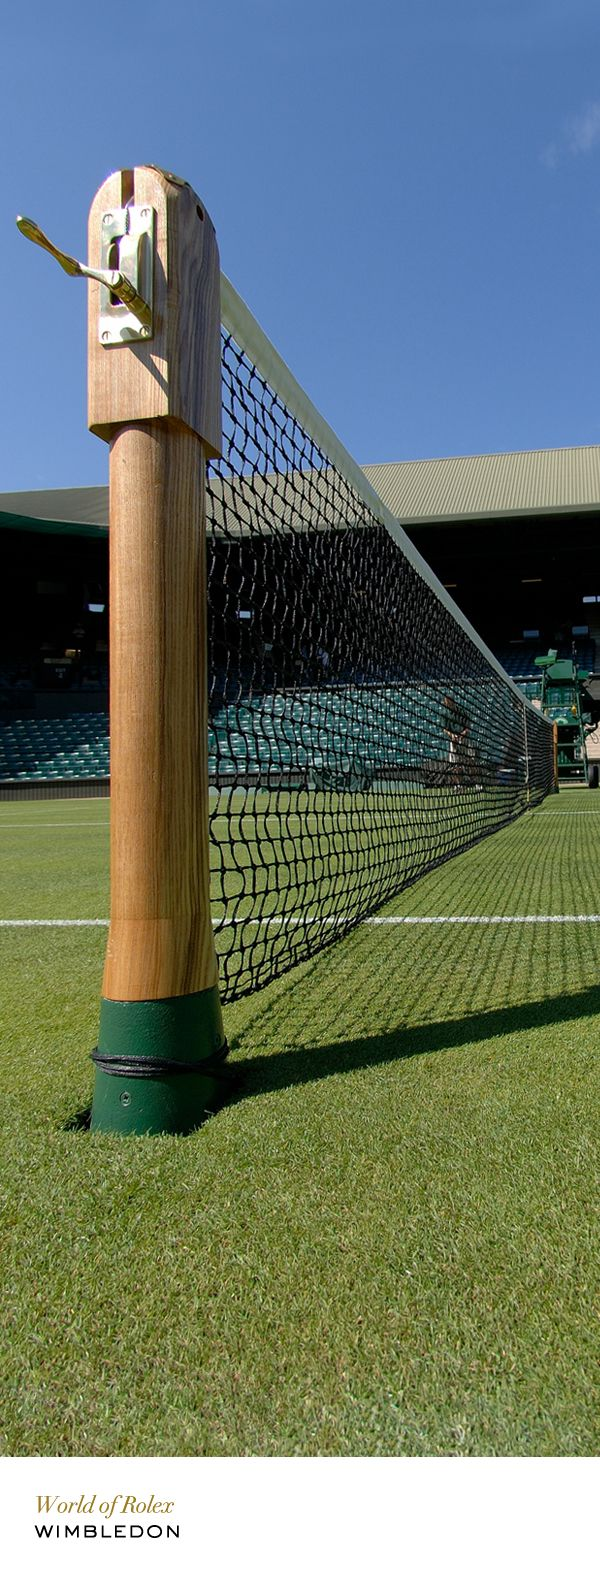 Wimbledon net post. #Rolex #RolexOfficial